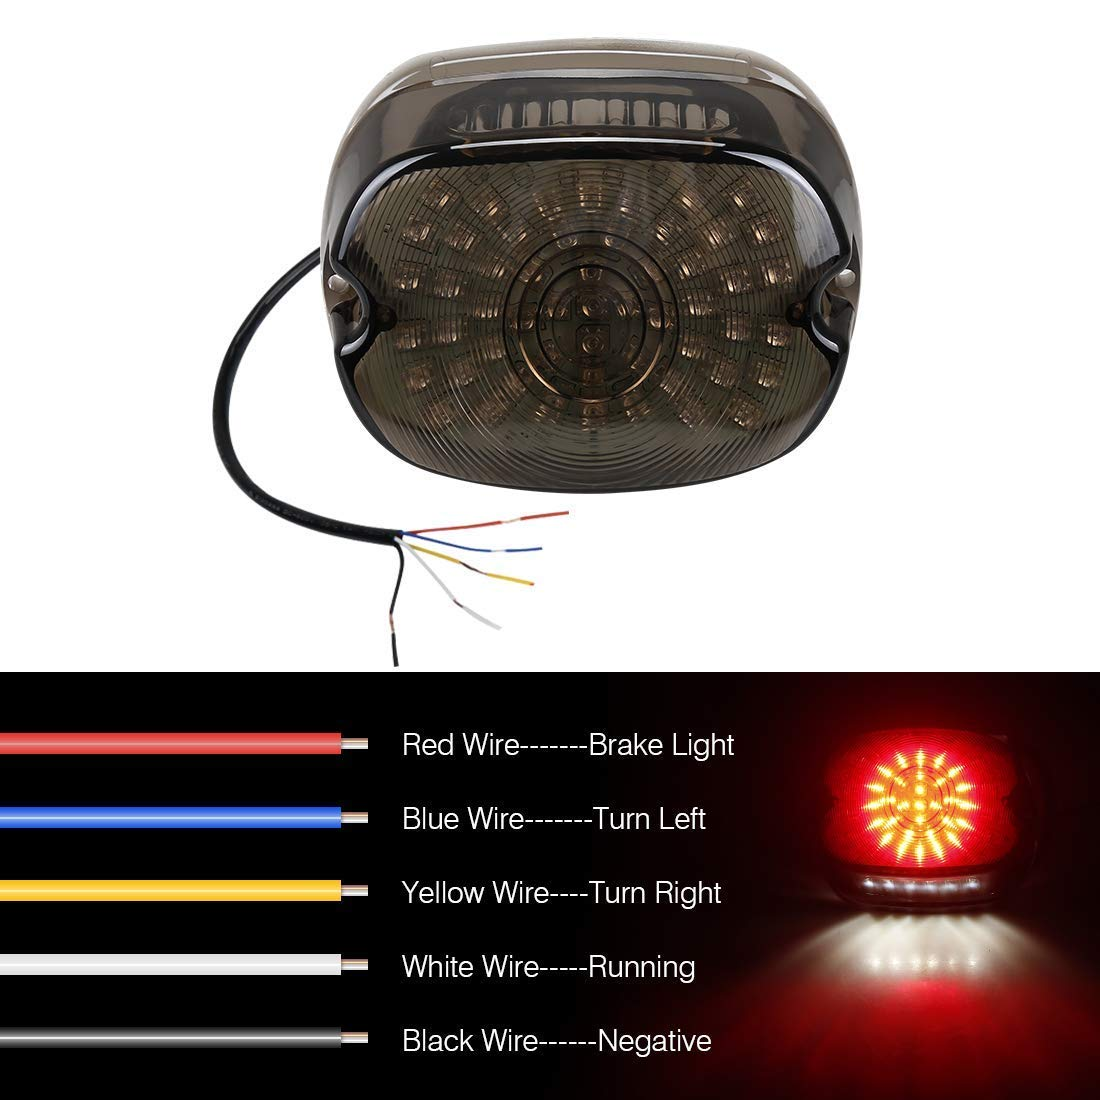 harley davidson smoked led tail light brake turn signal lights for  2002-2010 fxst models harley sportster 1200 dyna smoke lens lay down style:  buy online at best price in uae - amazon.ae  amazon.ae